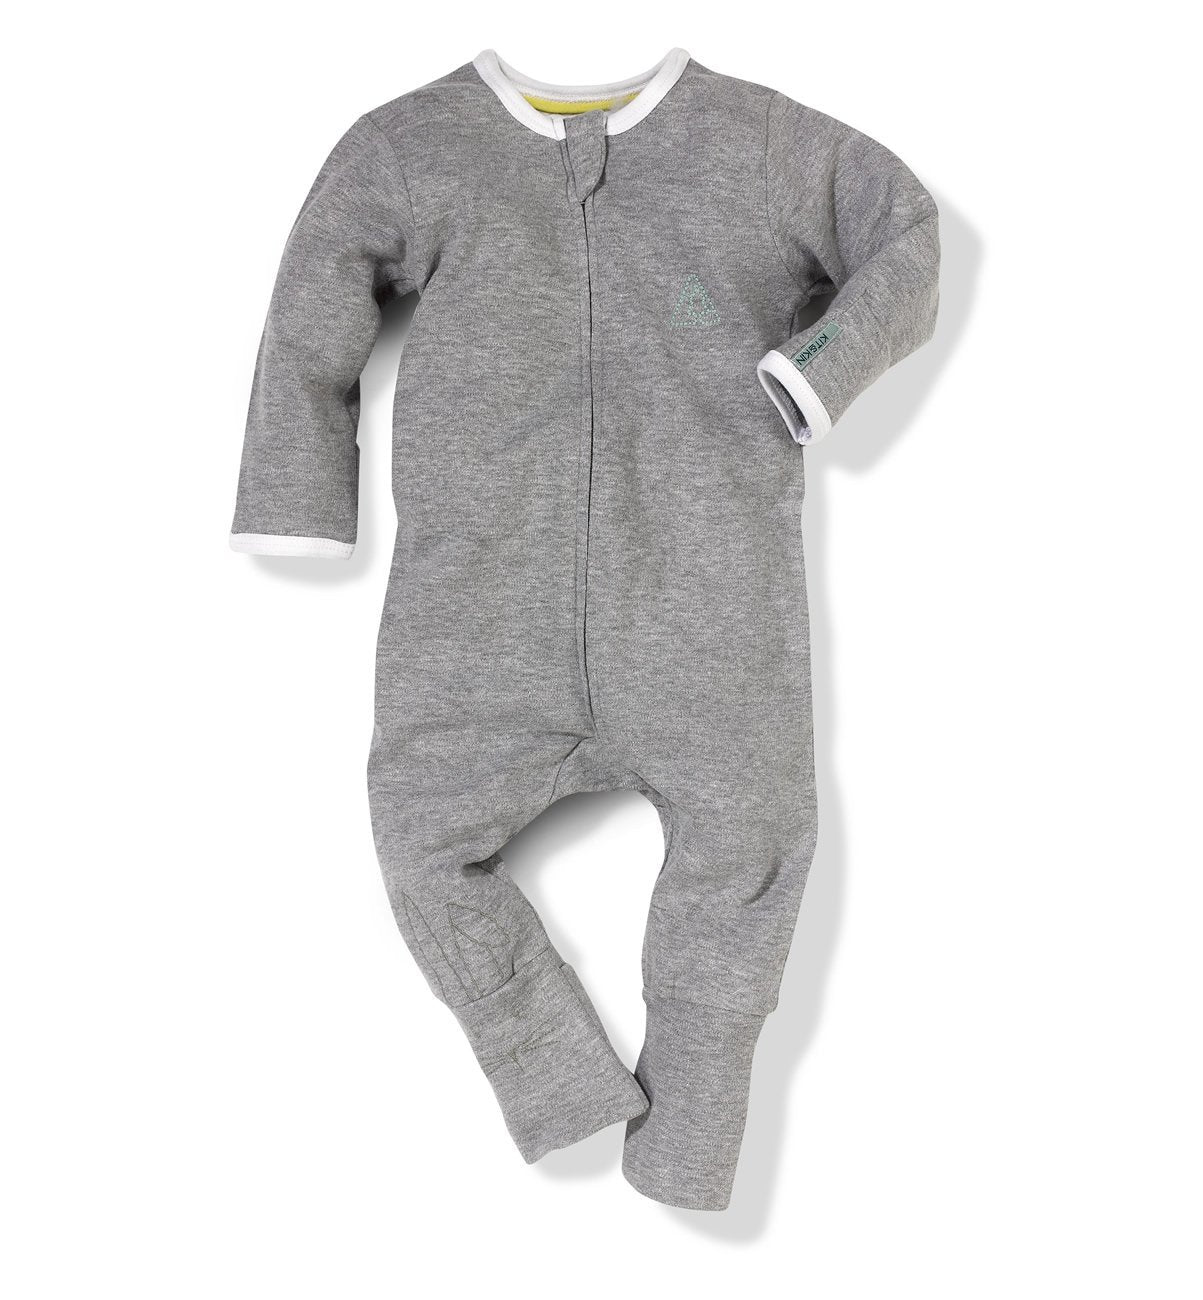 Kit & Kin sustainable grey All-in-one